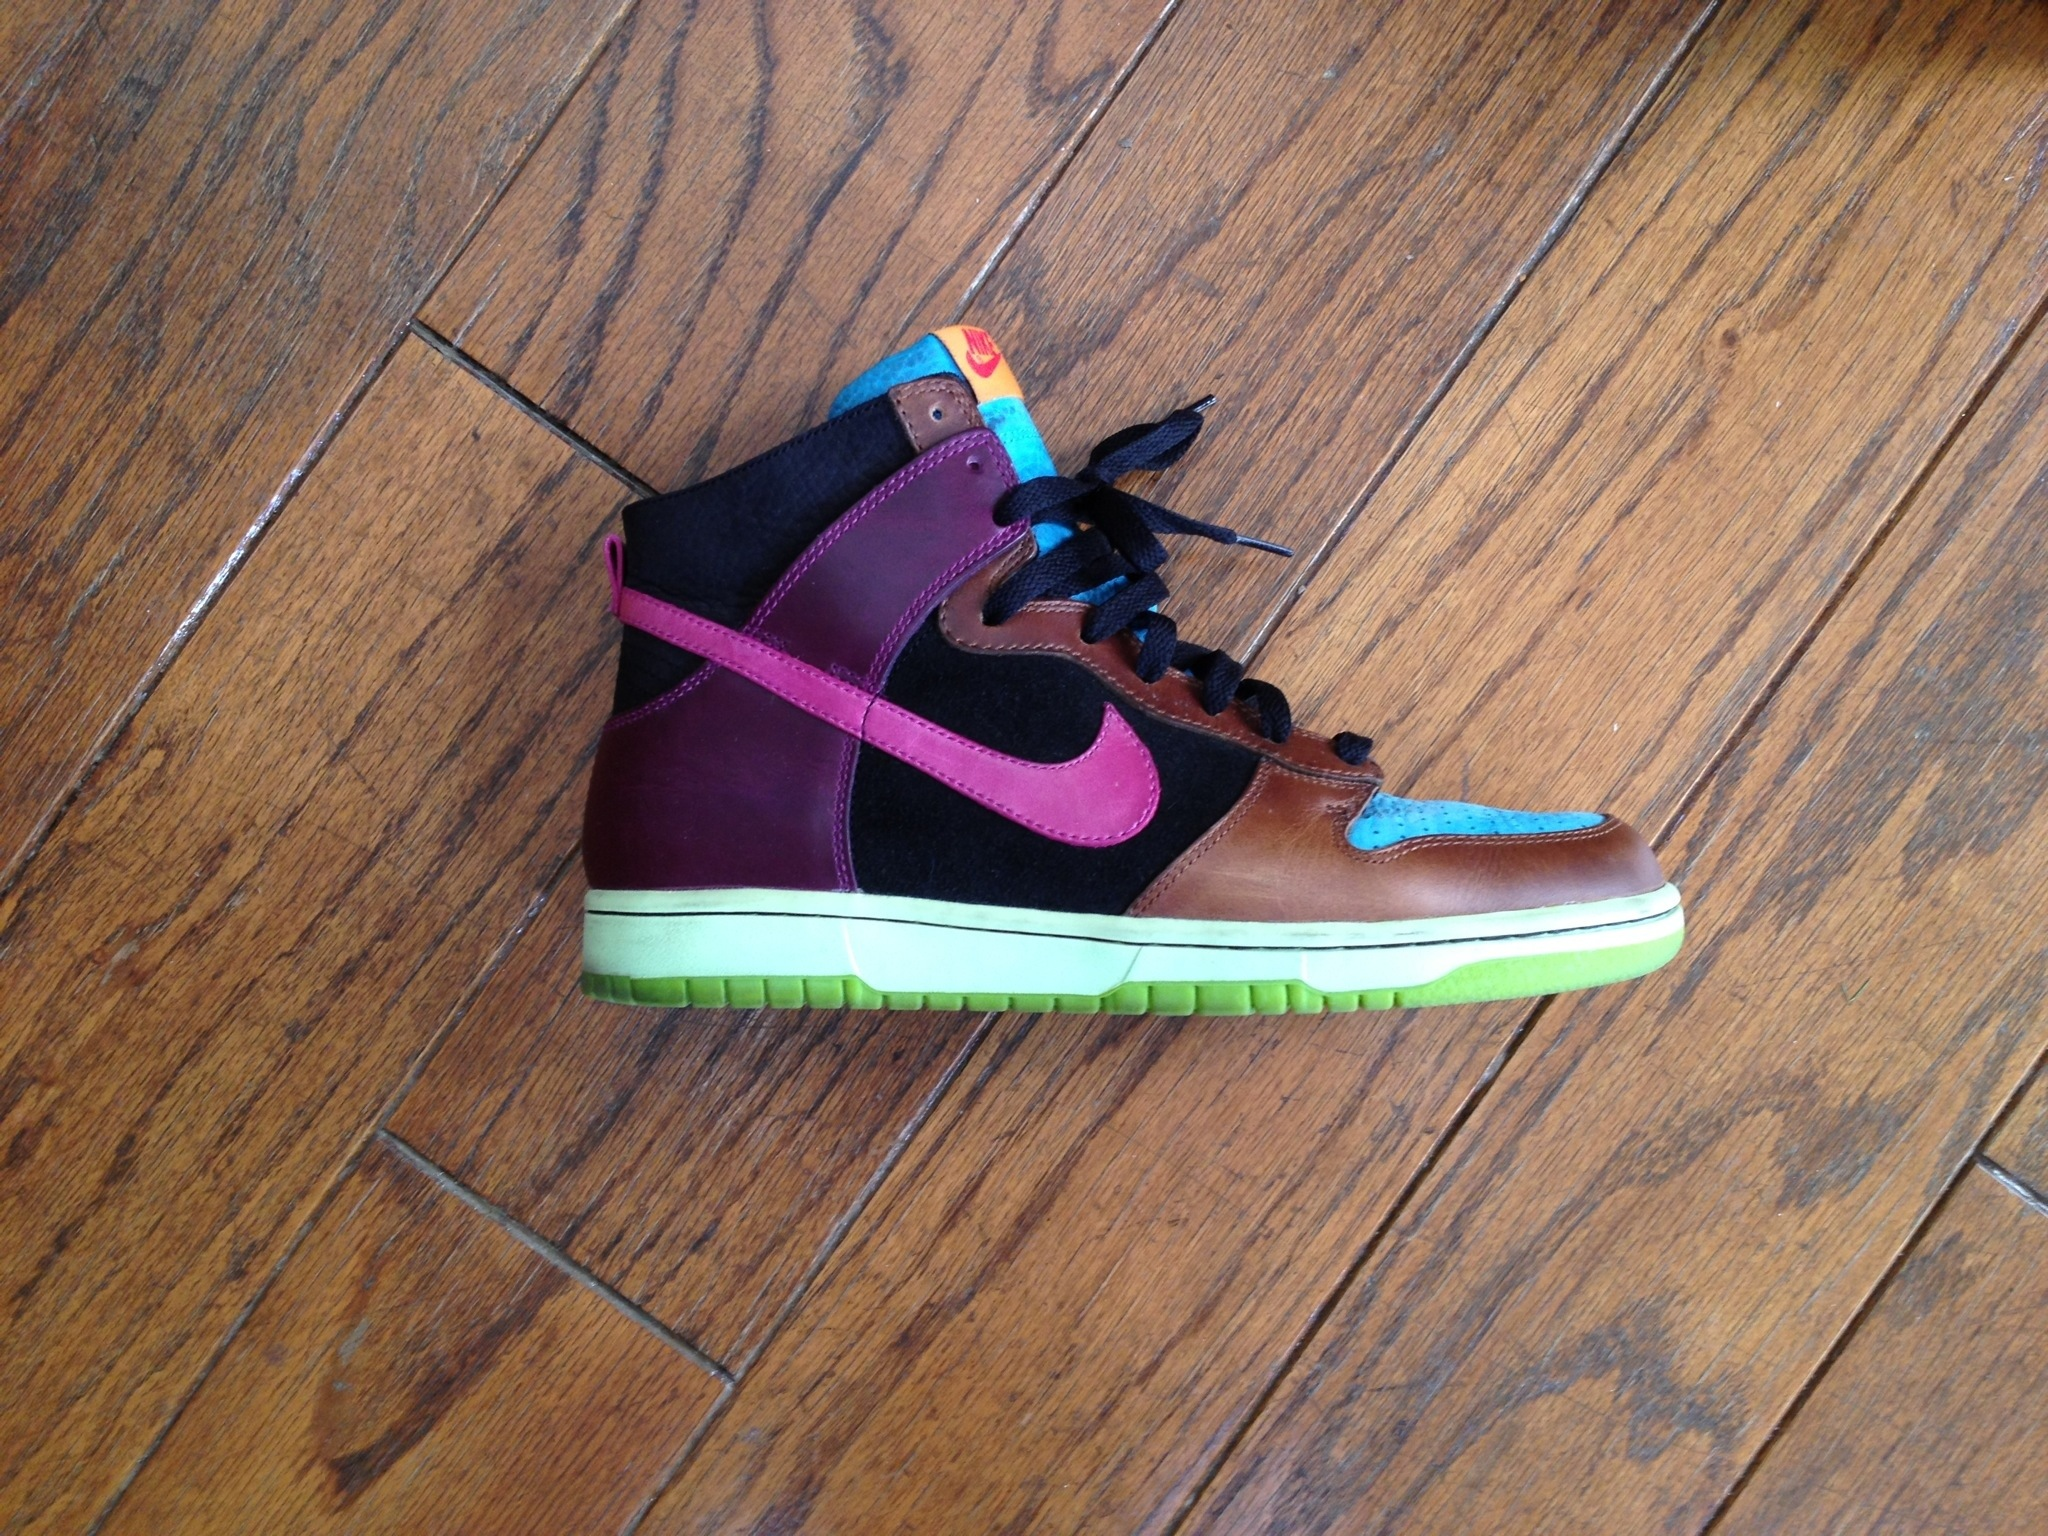 nike undefeated black nike high top basketball shoes